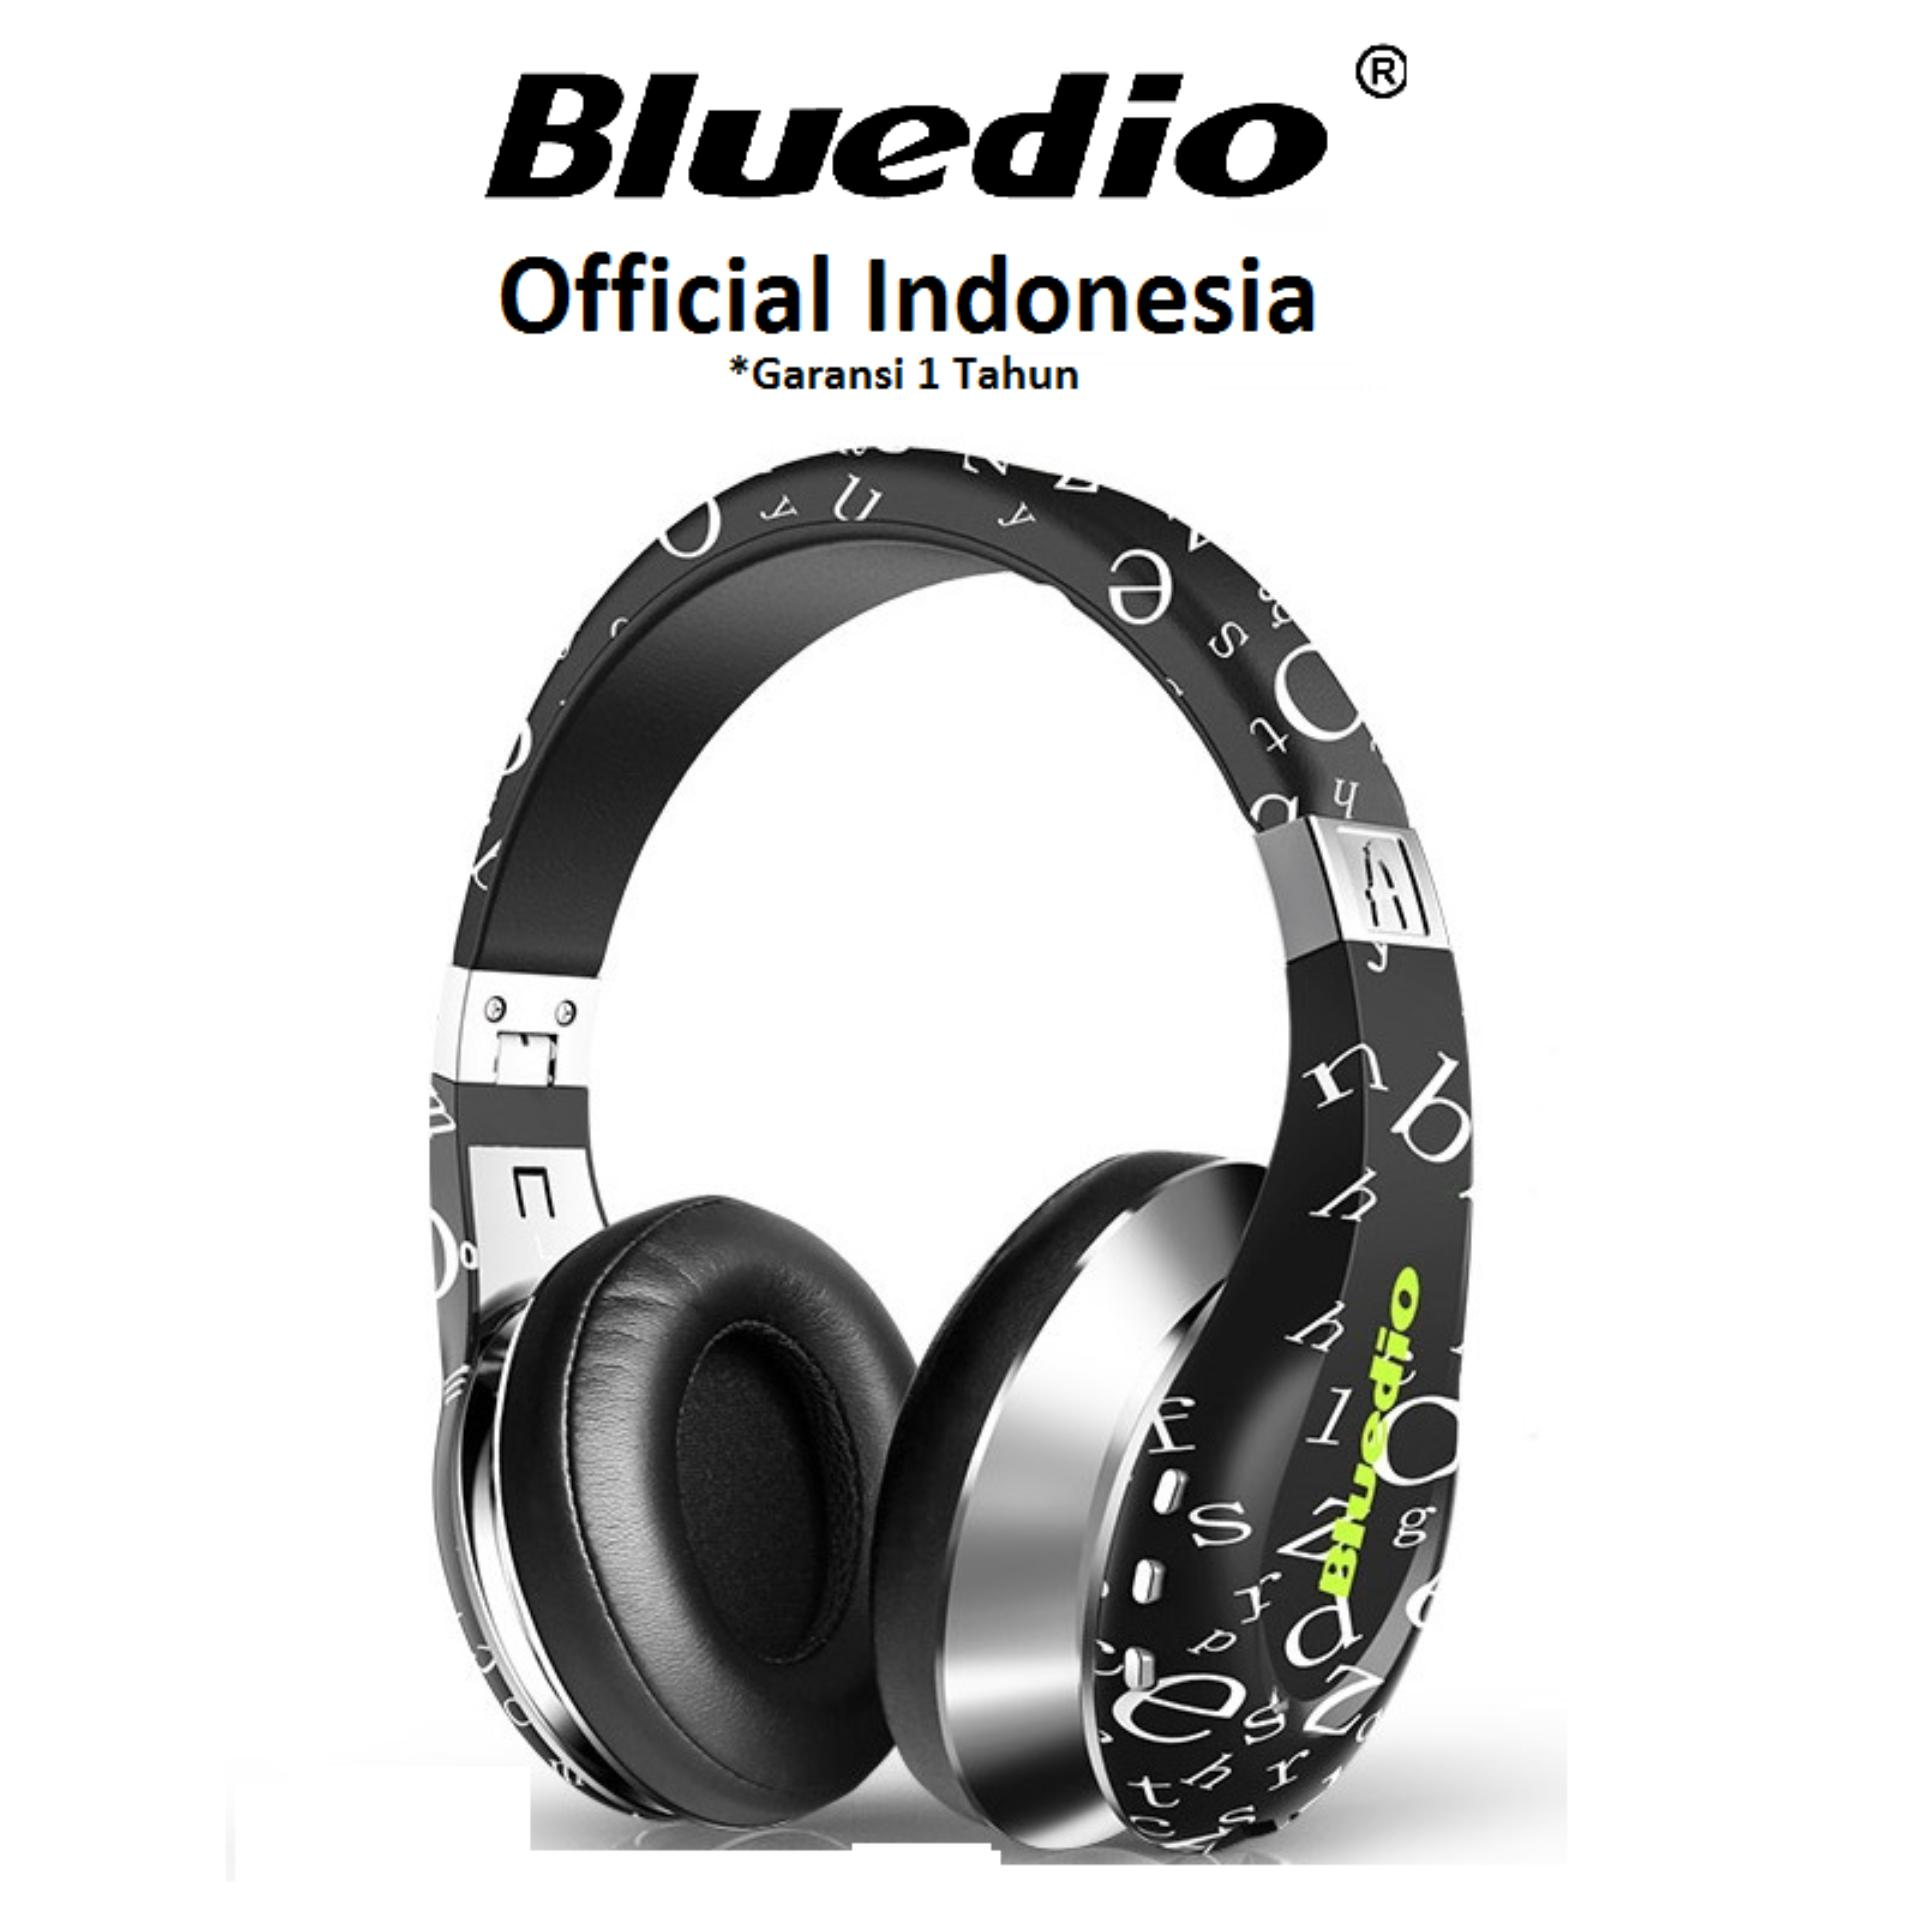 Jual Bluedio Air A Stylish Wireless Bluetooth Headphones With Mic Hitam Lengkap